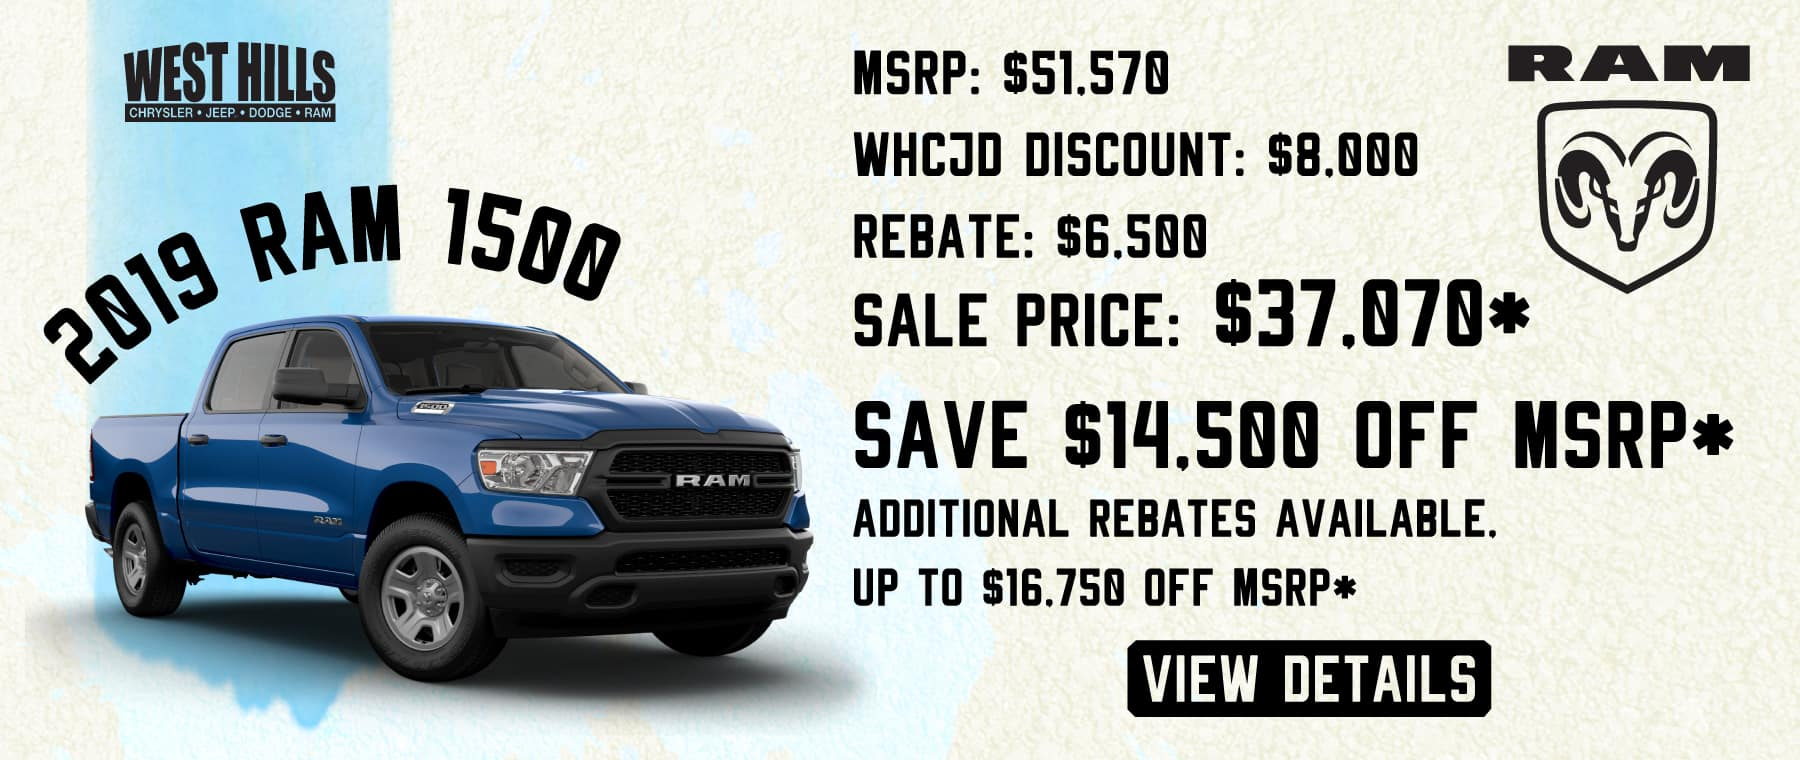 MSRP: $51,570 WHCJD Discount: $7,000 Rebate: $6,500 Sale Price: $37,070*  SAVE $14,500 OFF MSRP*   ADDITIONAL REBATES AVAILABLE, UP TO $16,750 OFF MSRP*